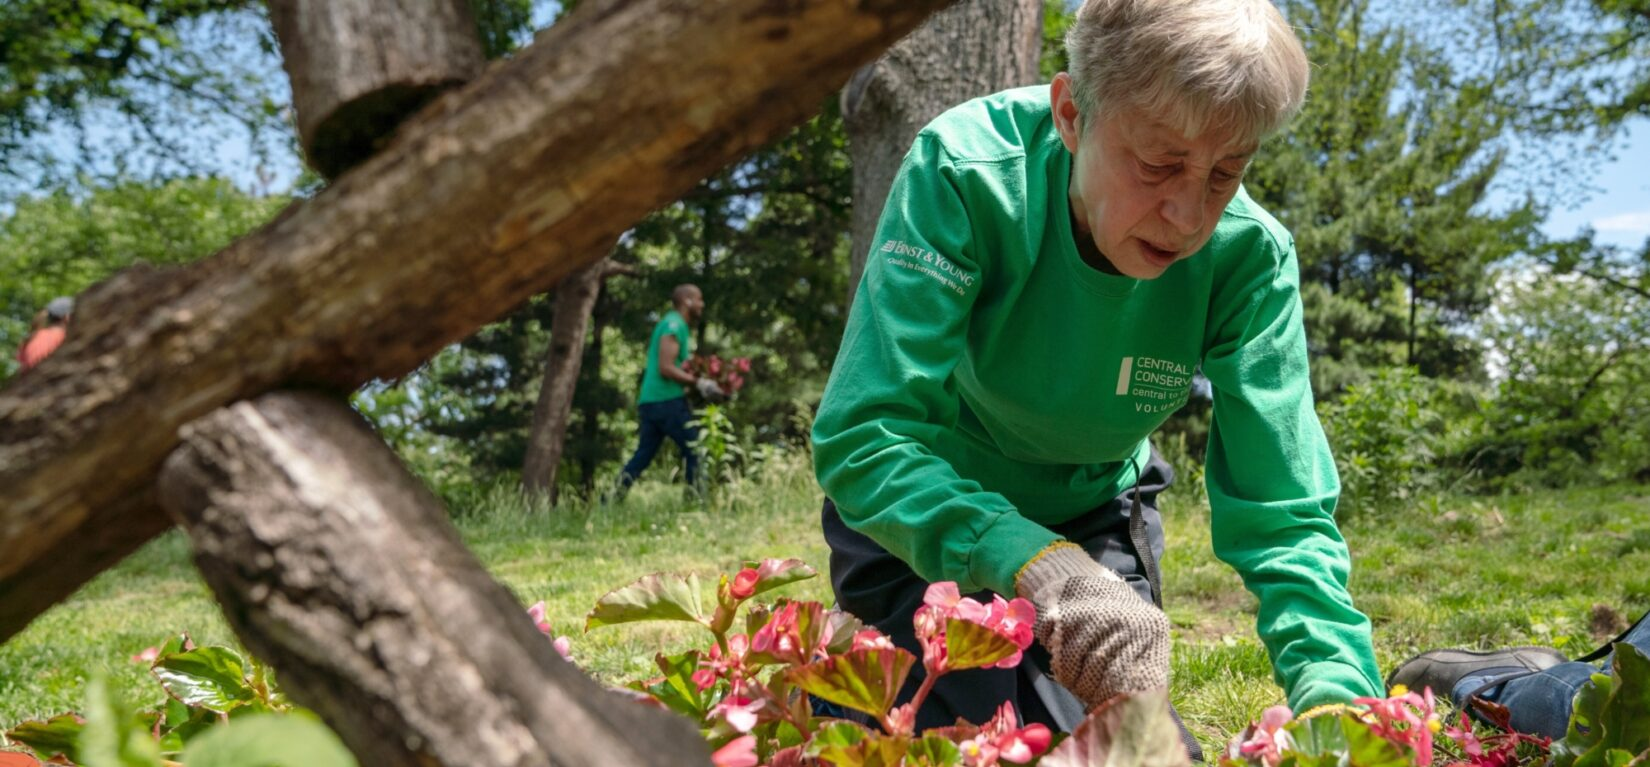 A volunteer at work on a flower bed in the Park